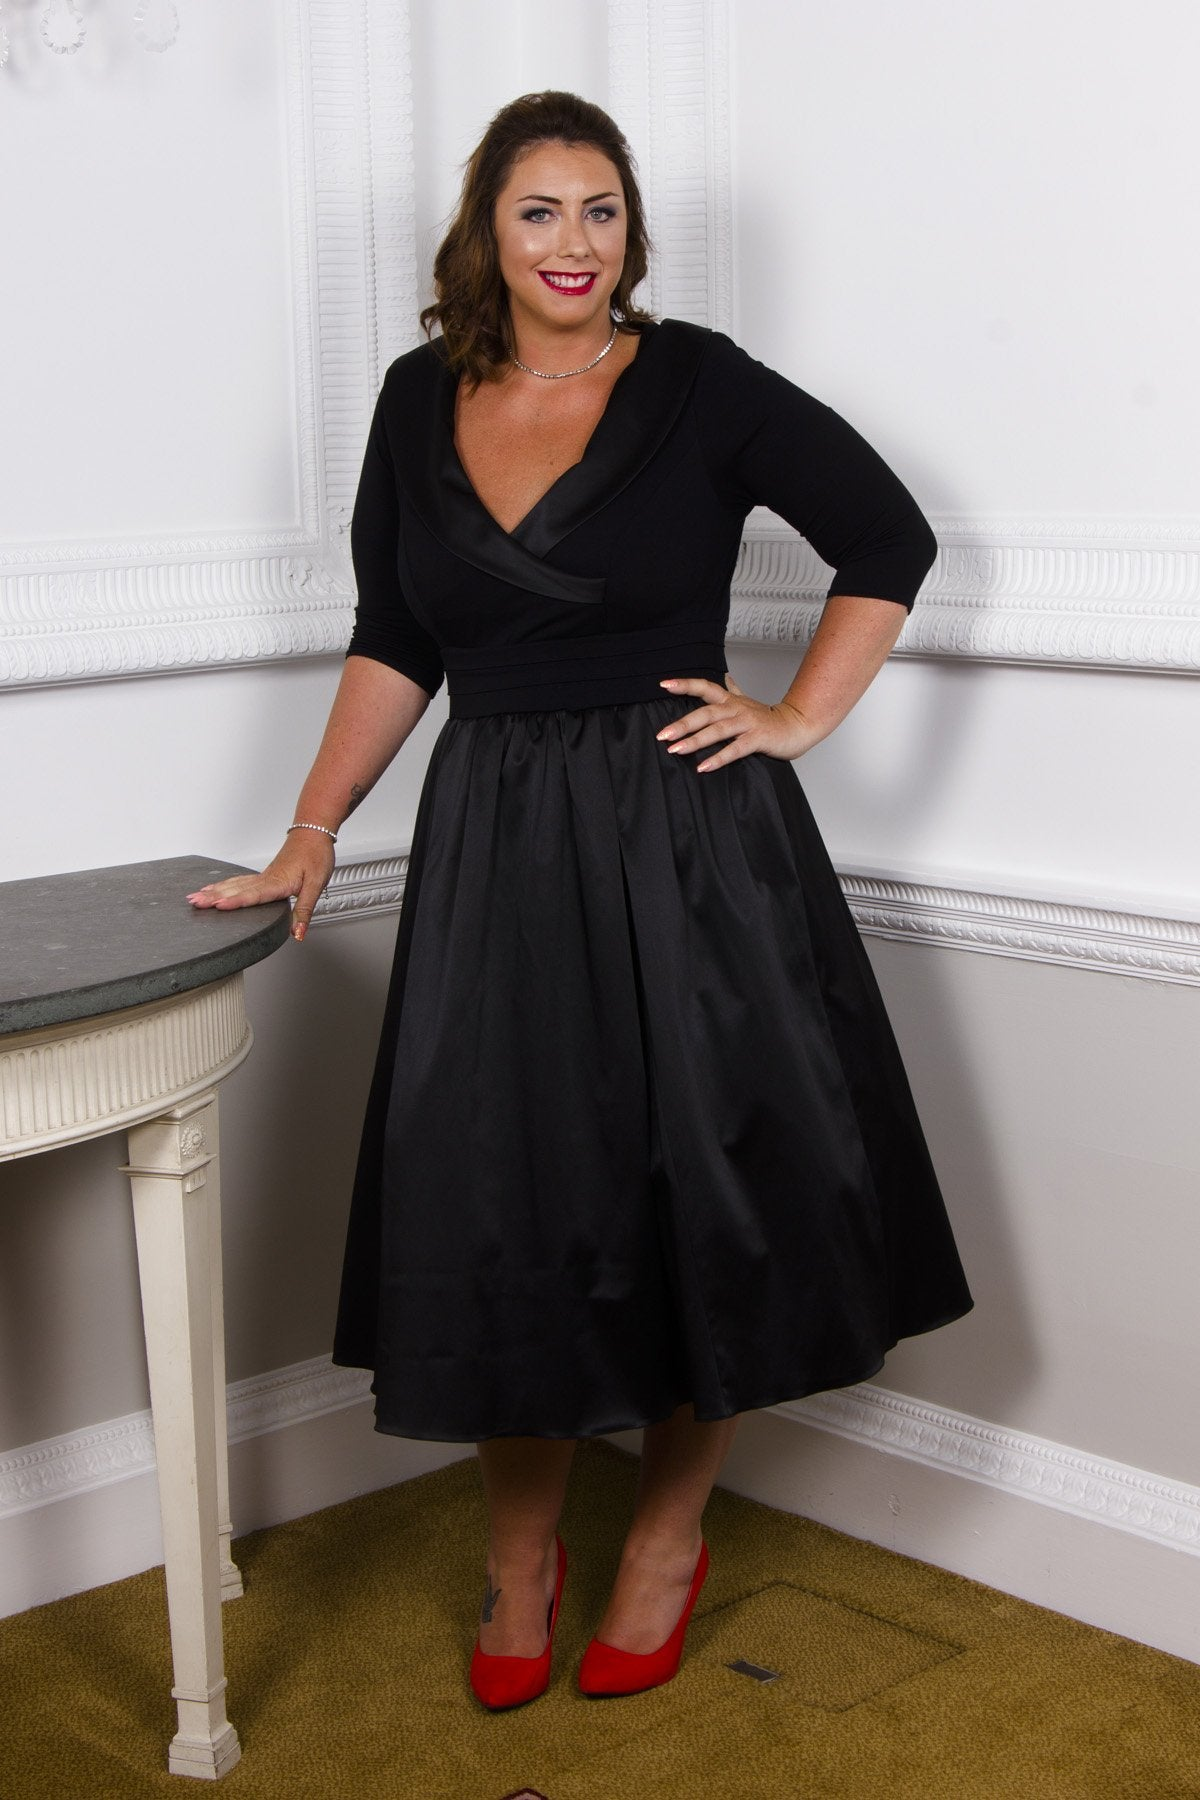 Vintage Evening Dresses and Formal Evening Gowns The Olivia Satin Tuxedo Prom Dress - Black  16 £90.00 AT vintagedancer.com